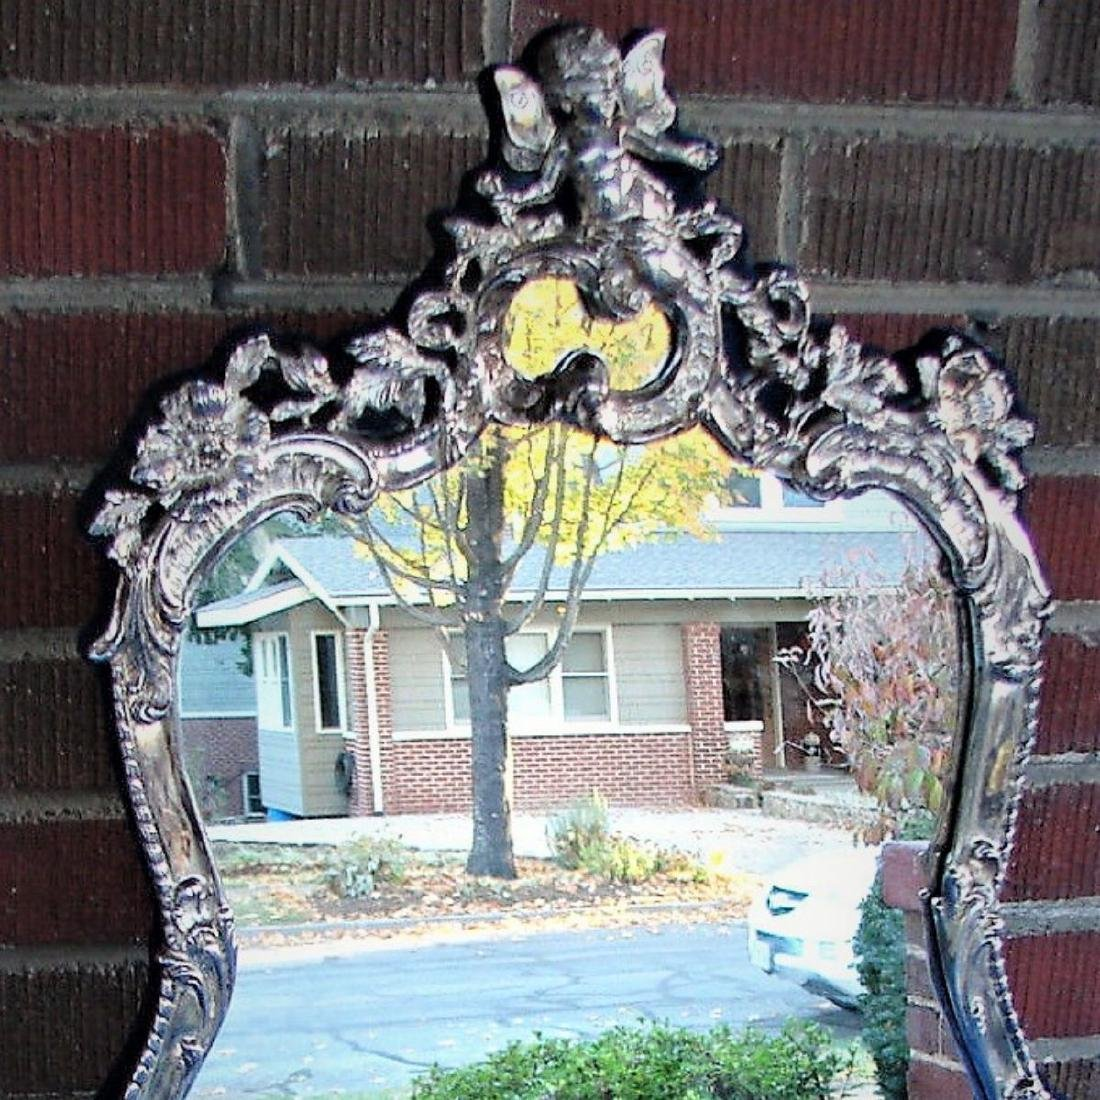 STERLING SILVER CHERUB PUTTI FRAME MIRROR SIGNED BY JR - 2